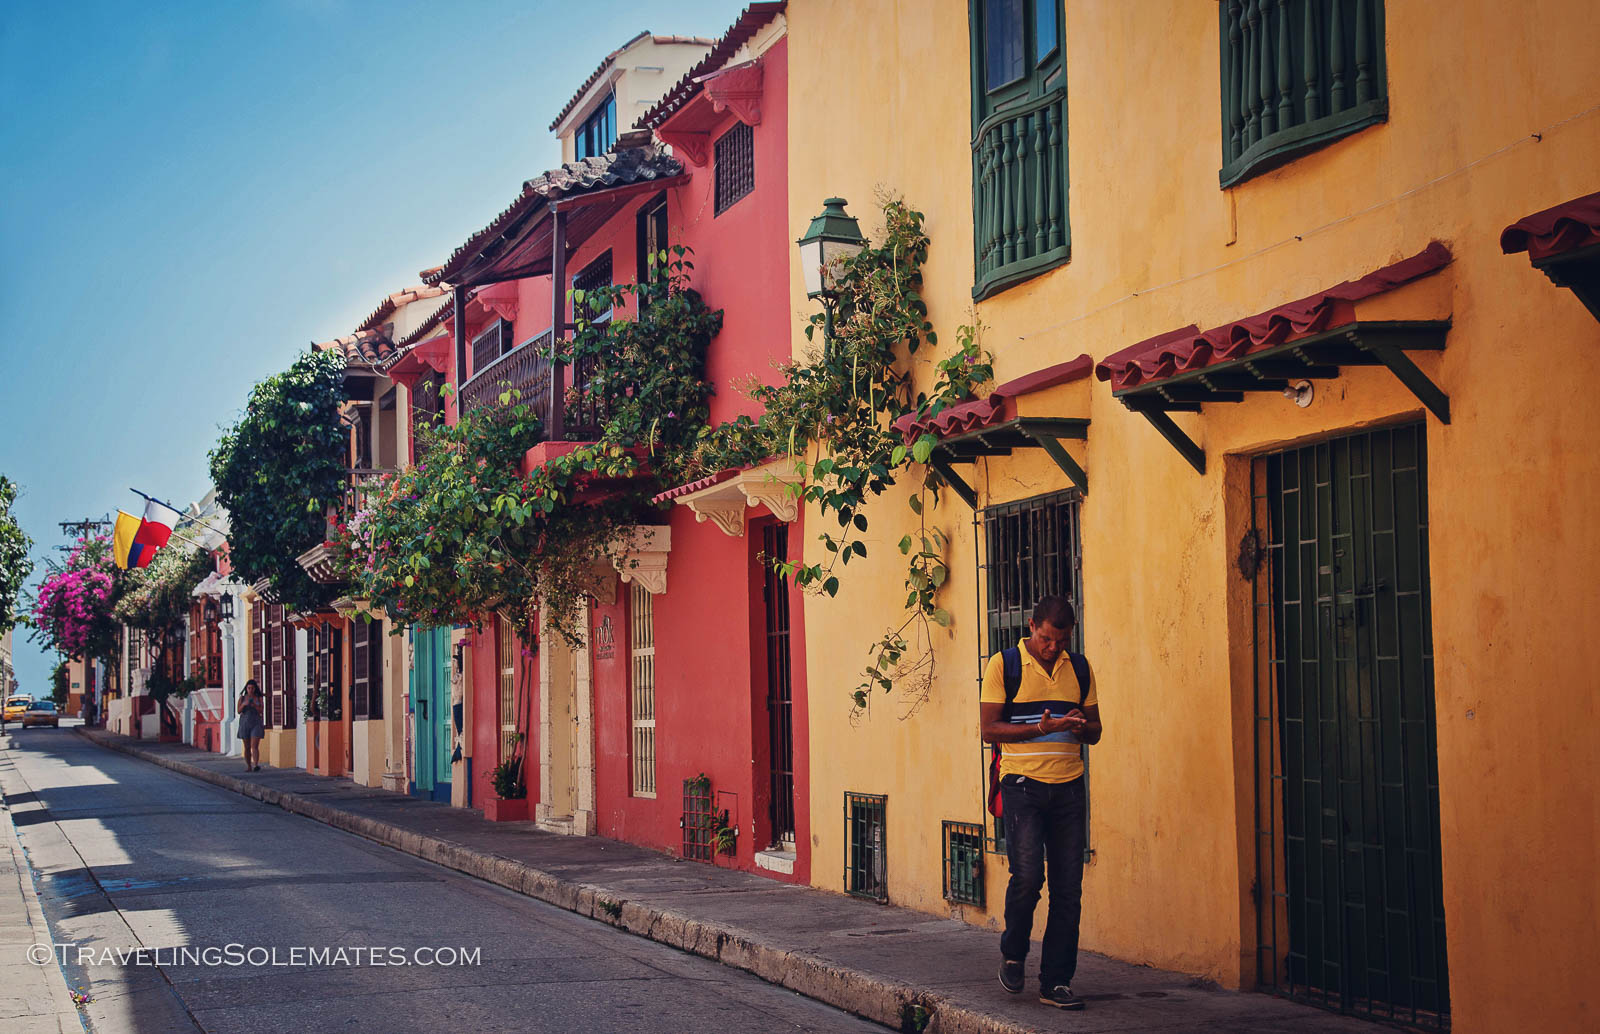 Colorful facades in Old Cartagena, Colombia